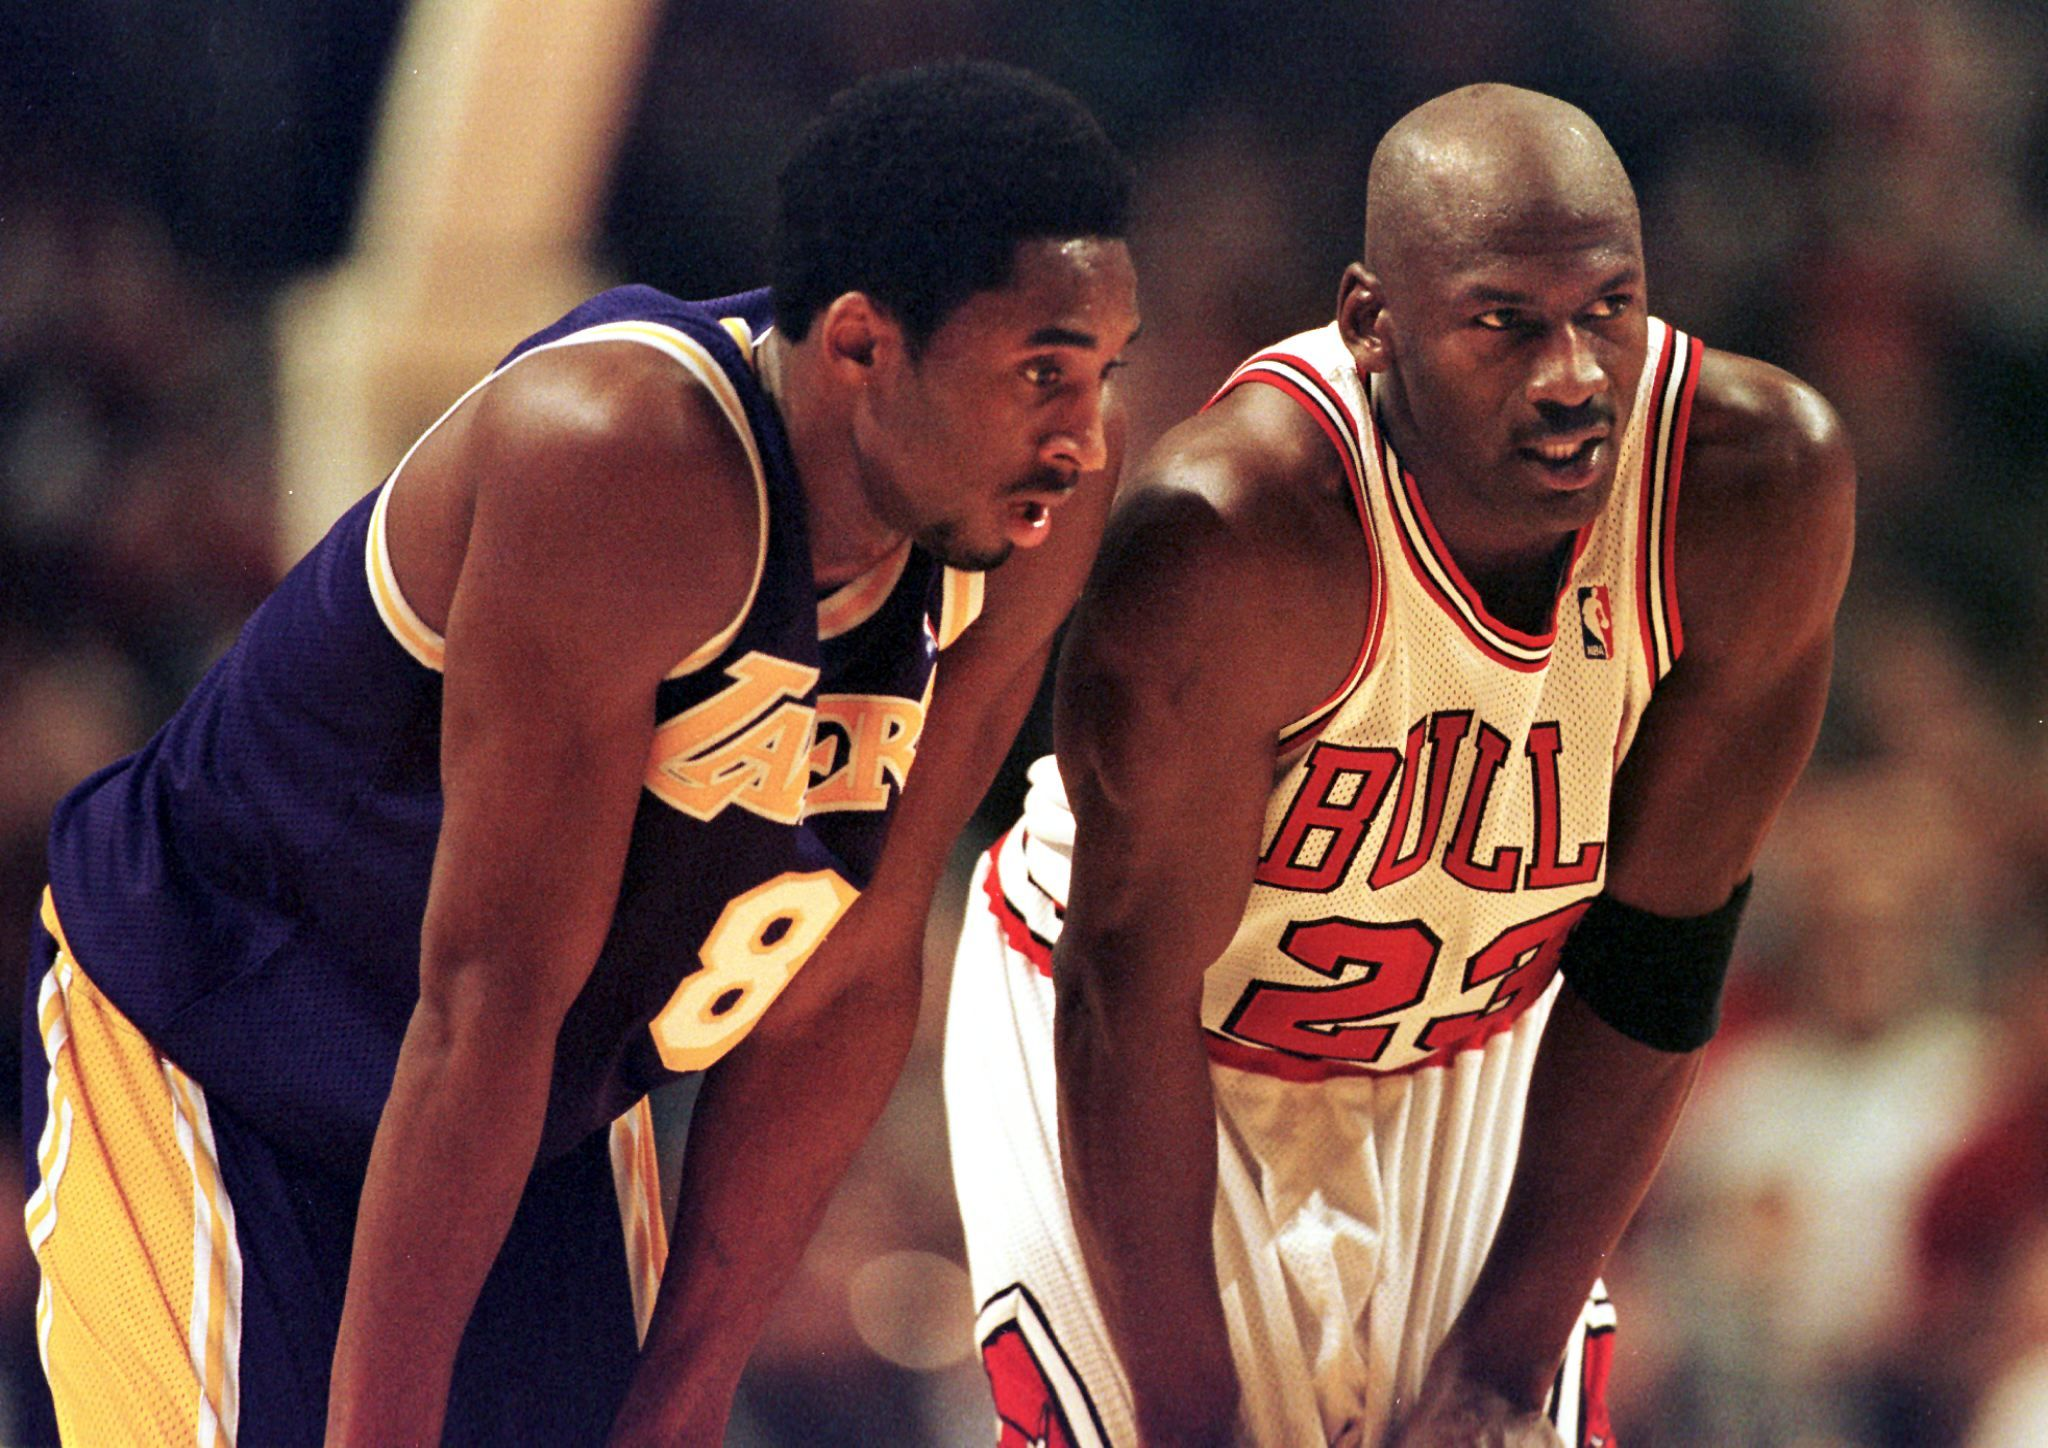 Michael Jordan Reveals His Last Texts With Kobe Bryant About Tequila, Gigi,  and Competition